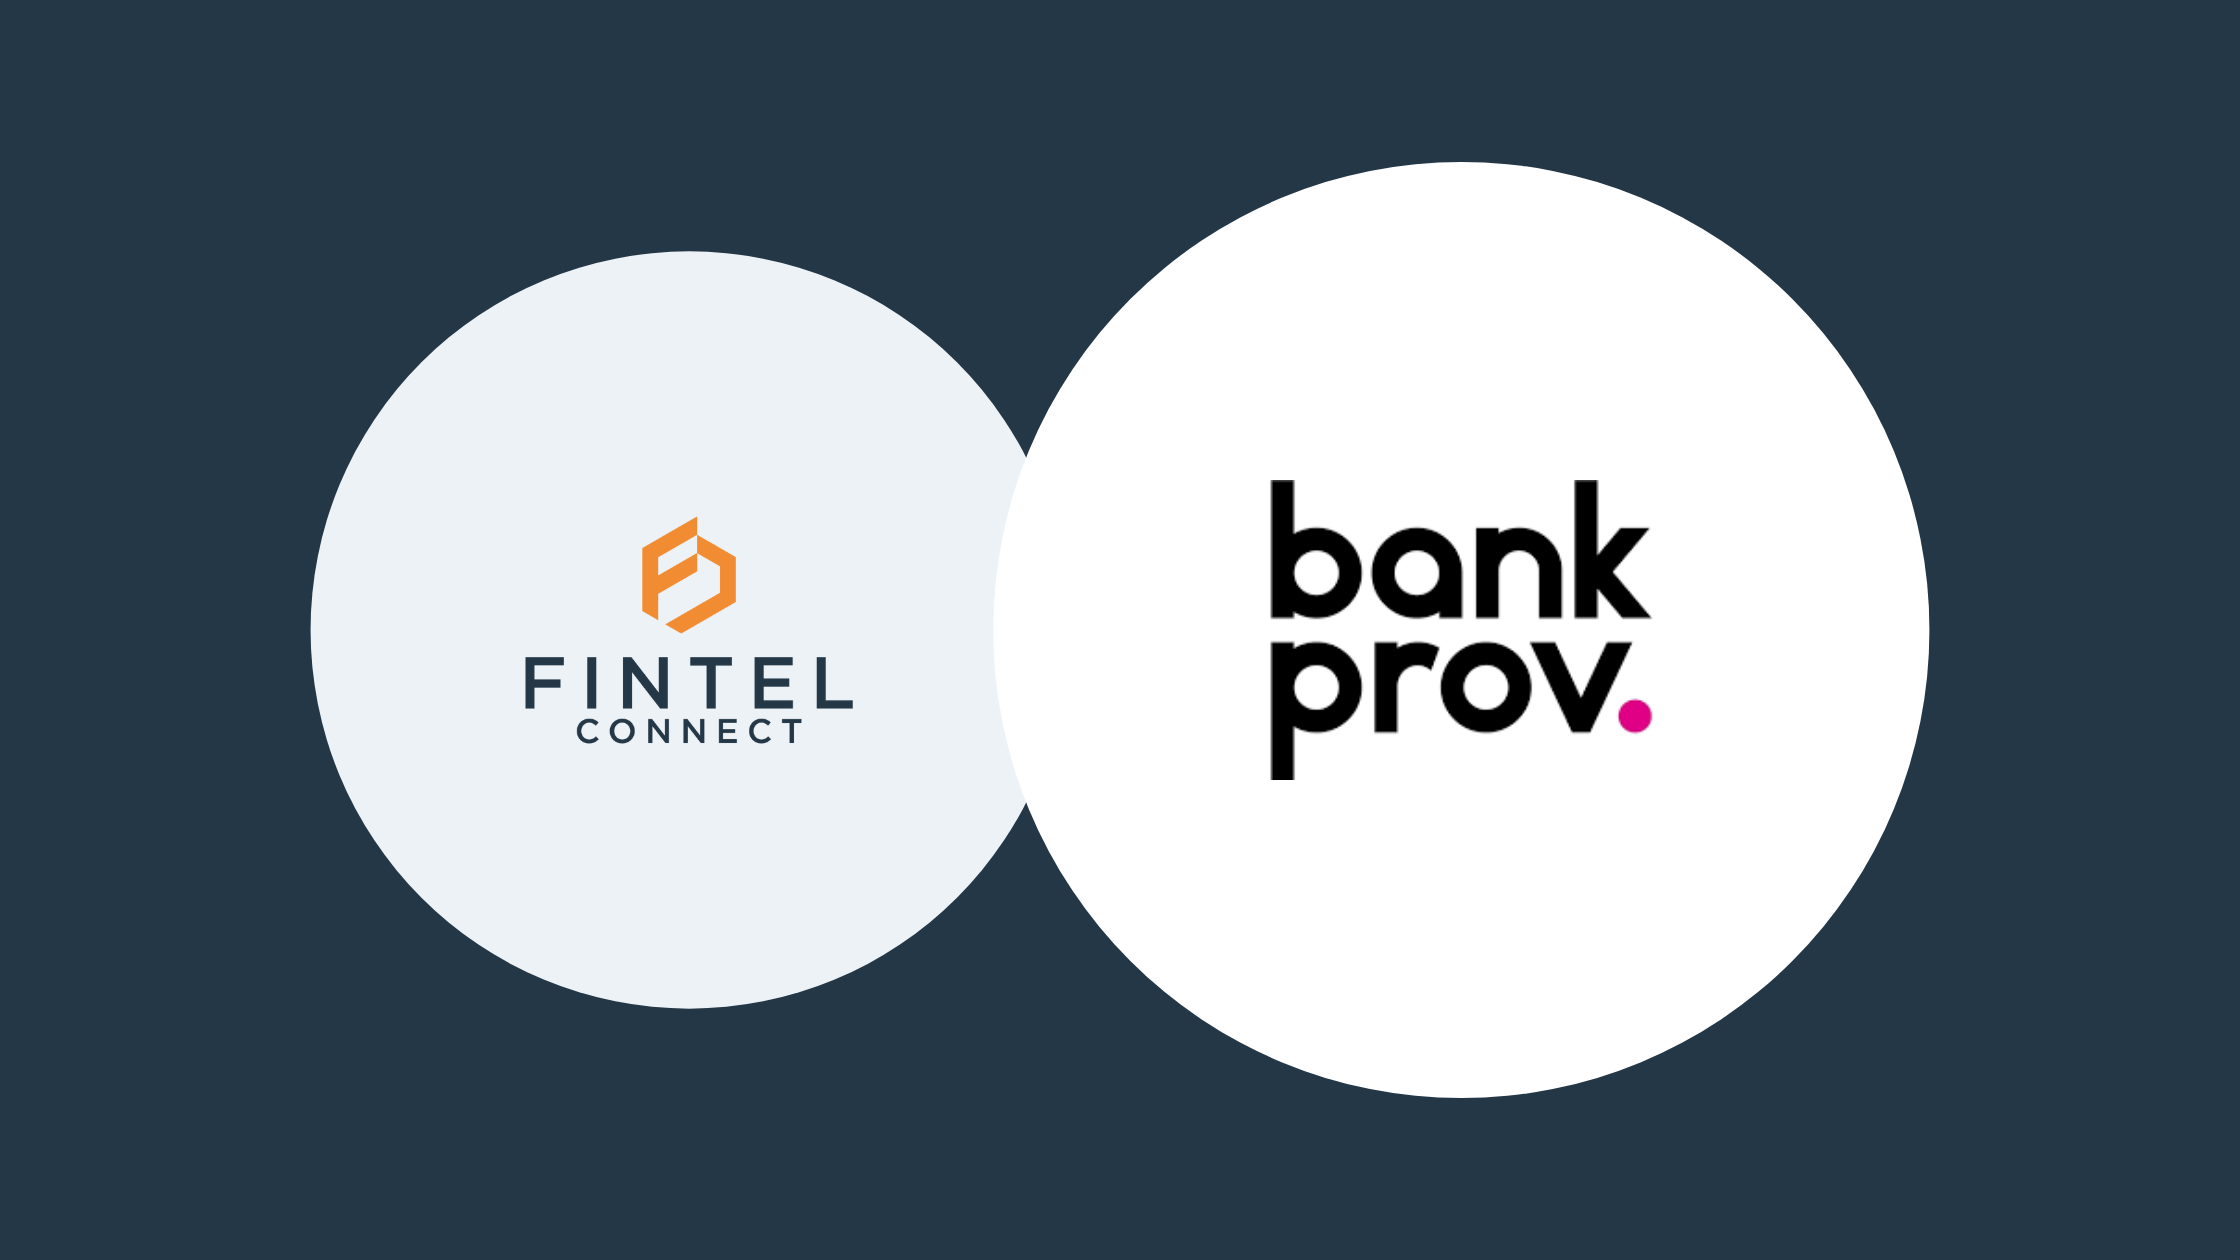 BankProv Partners with Fintel Connect to Expand Reach of Next-Gen Banking Solutions